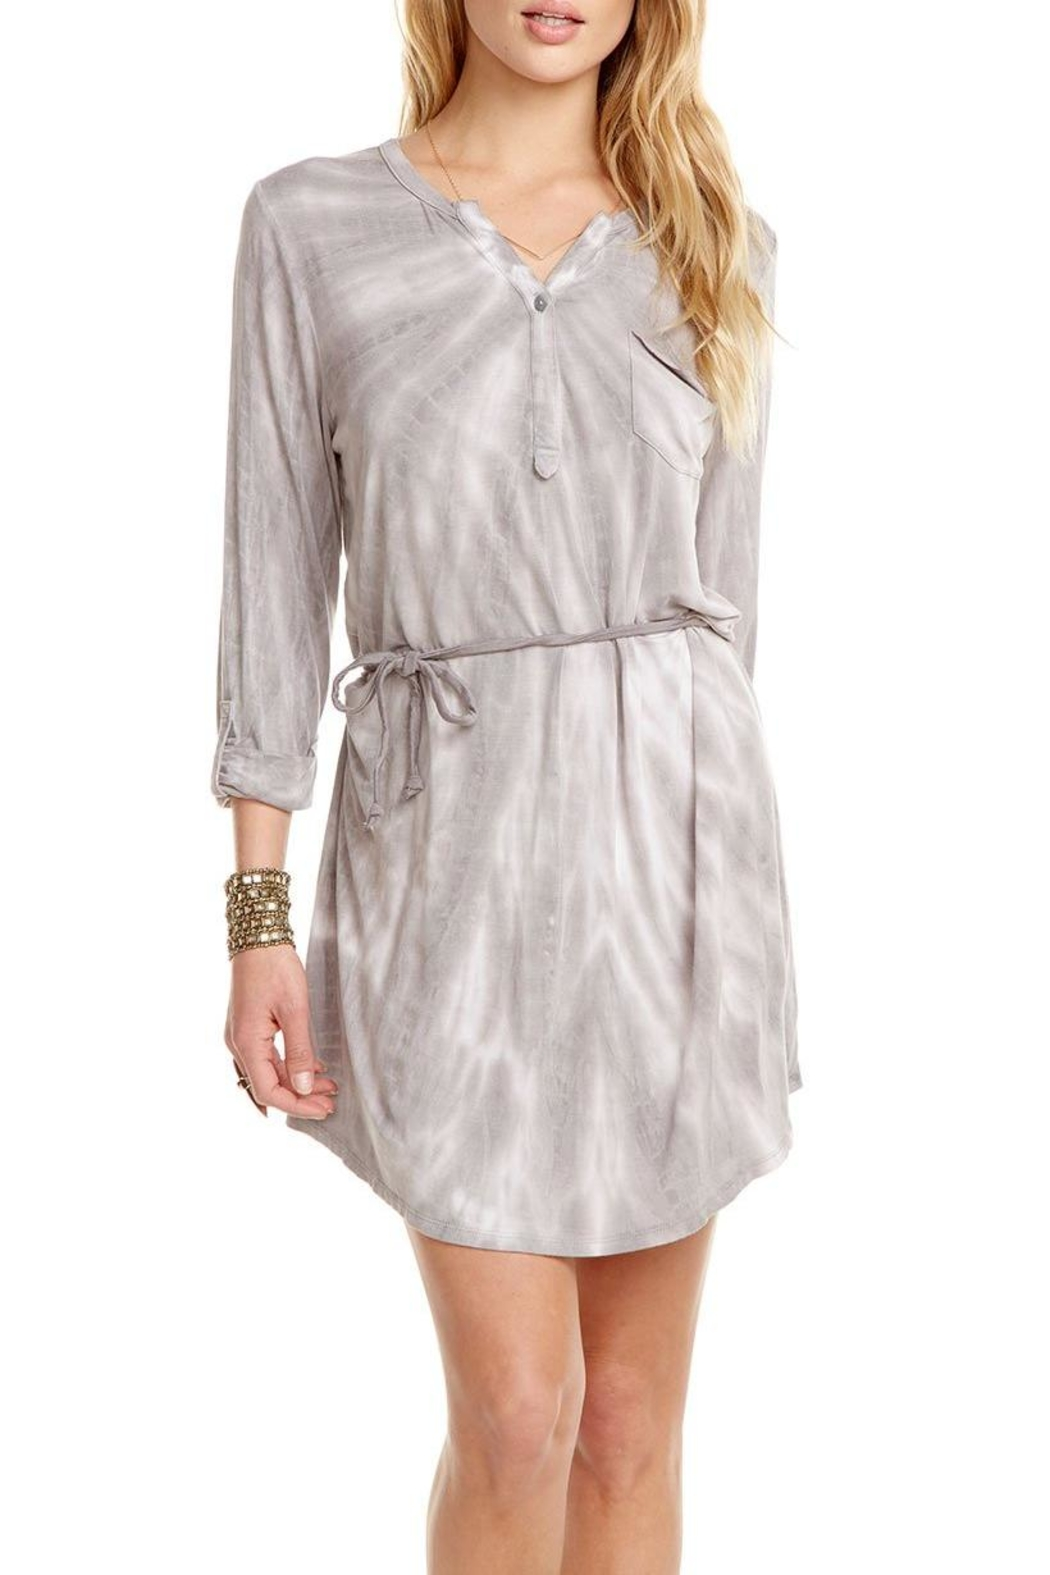 Chaser Rolled-Cuff Henley Dress - Main Image